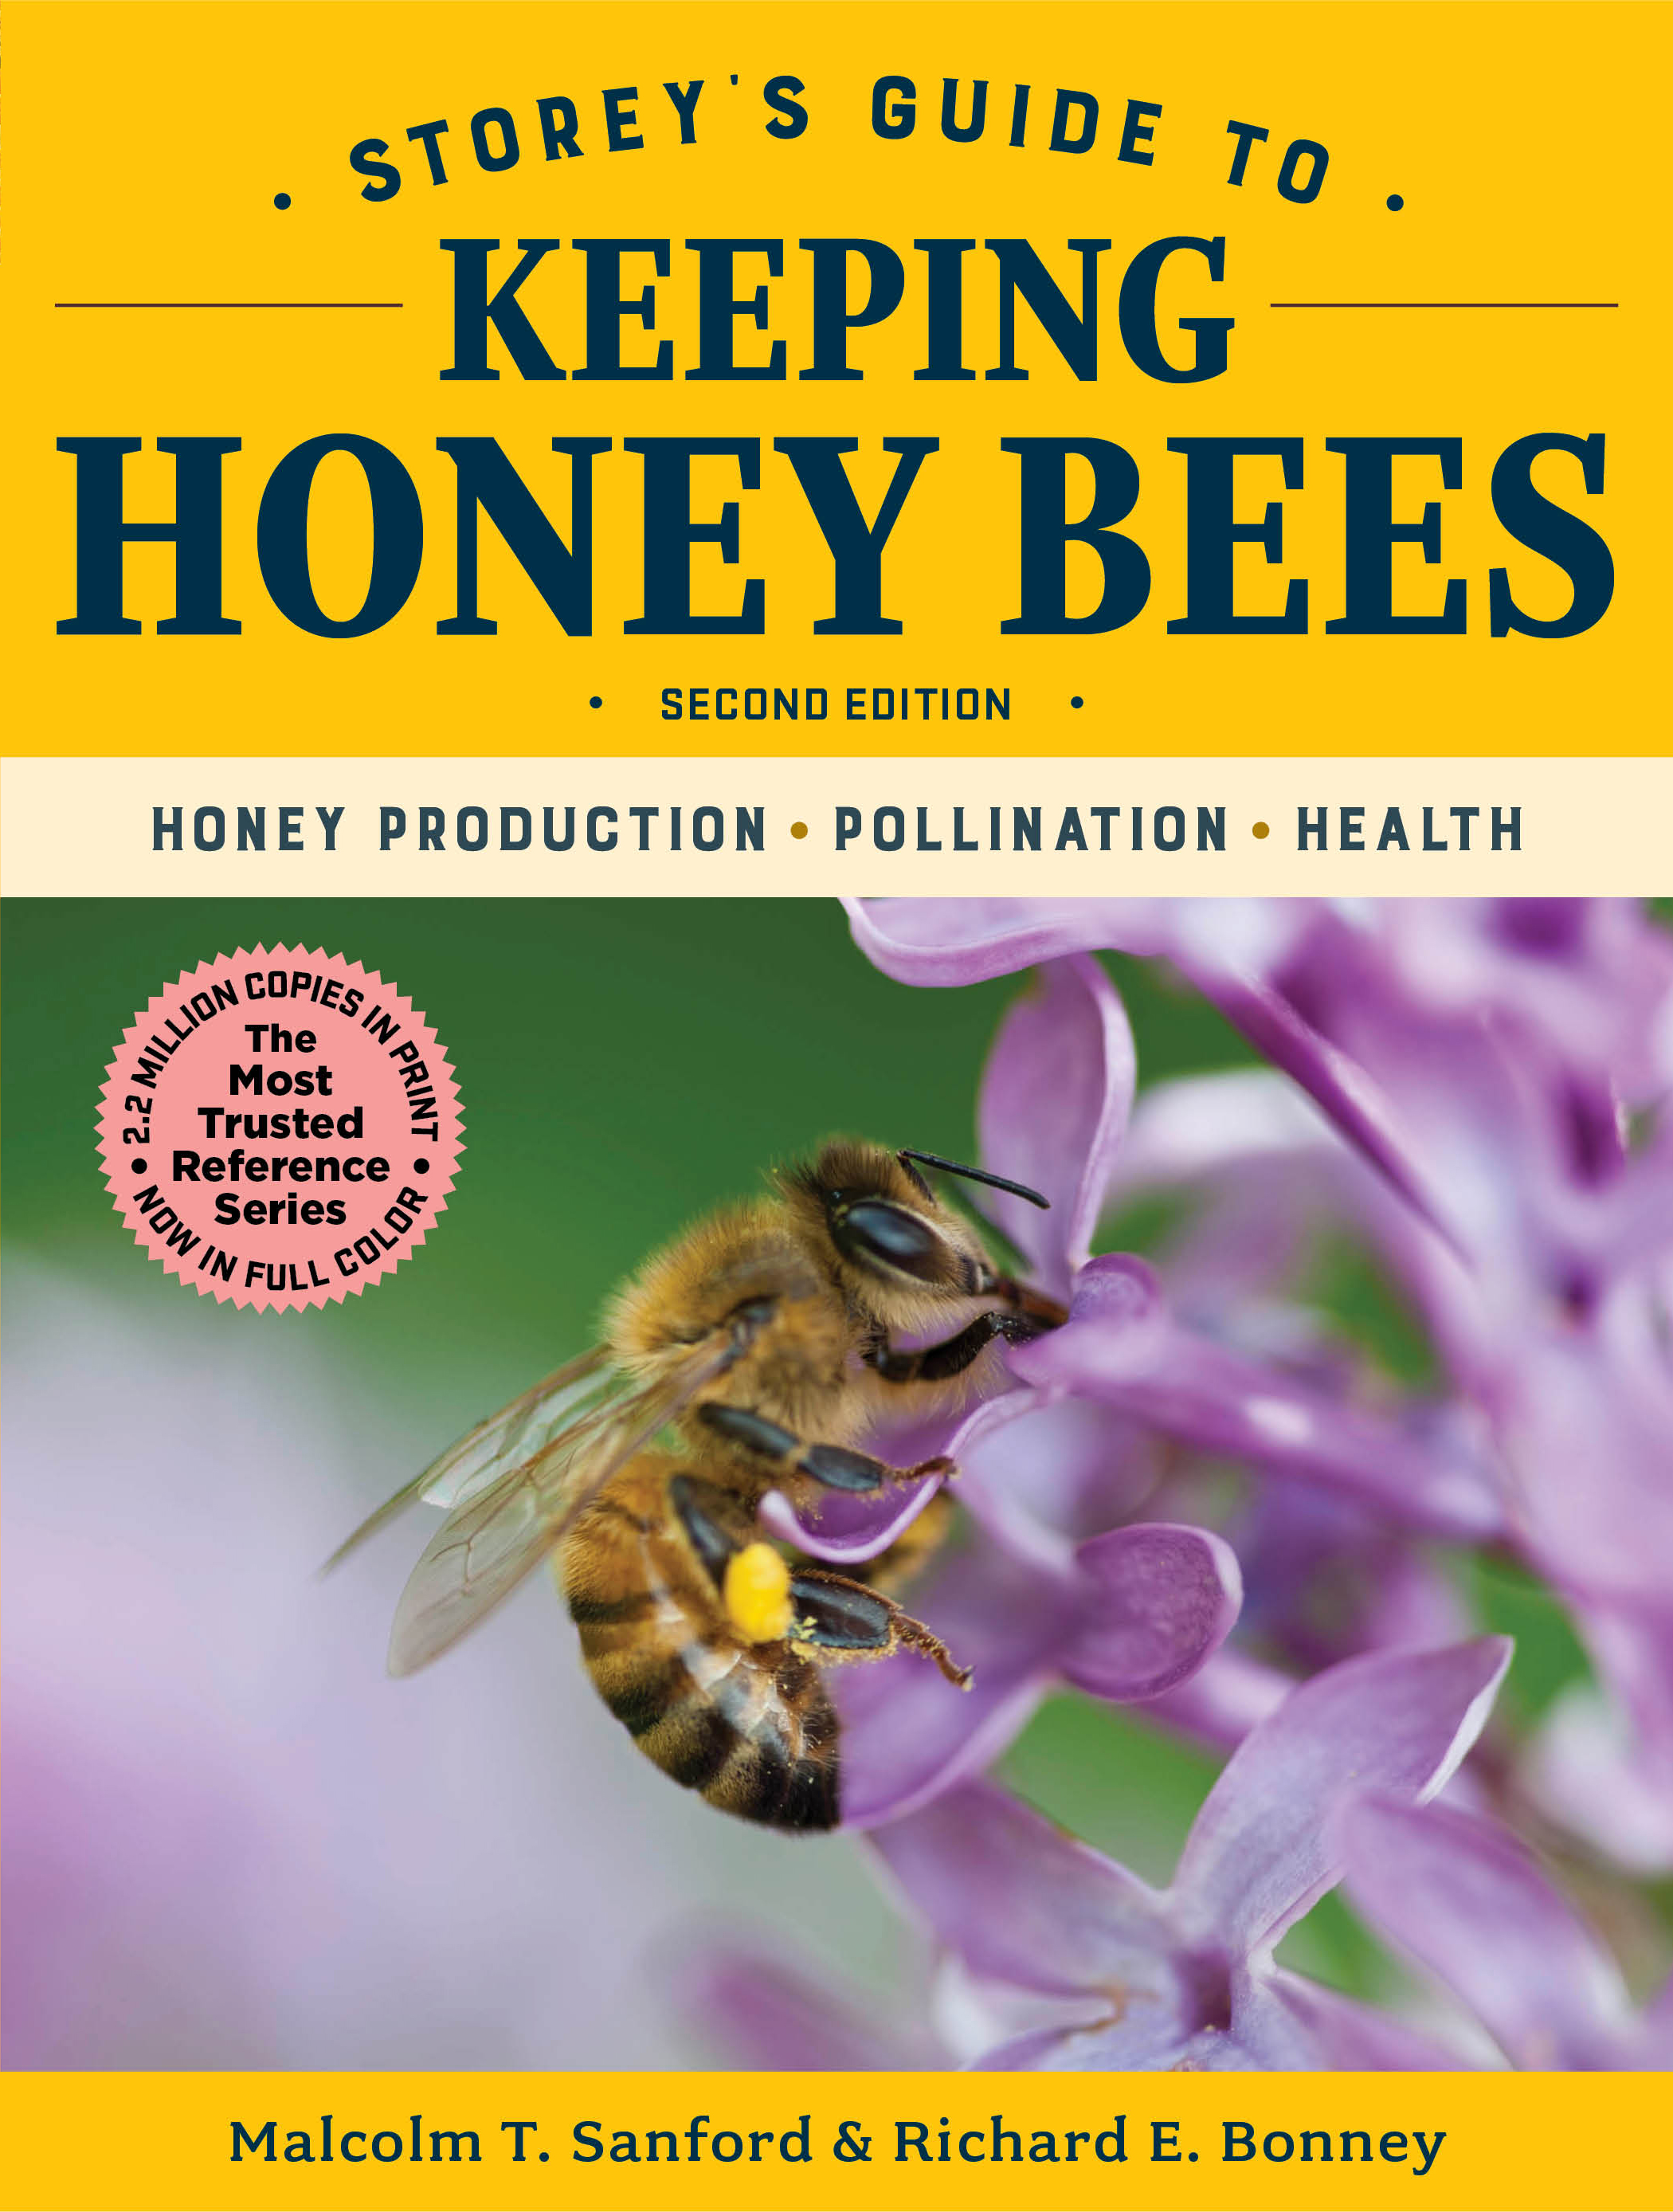 Storey's Guide to Keeping Honey Bees, 2nd Edition Honey Production, Pollination, Health - Malcolm T. Sanford